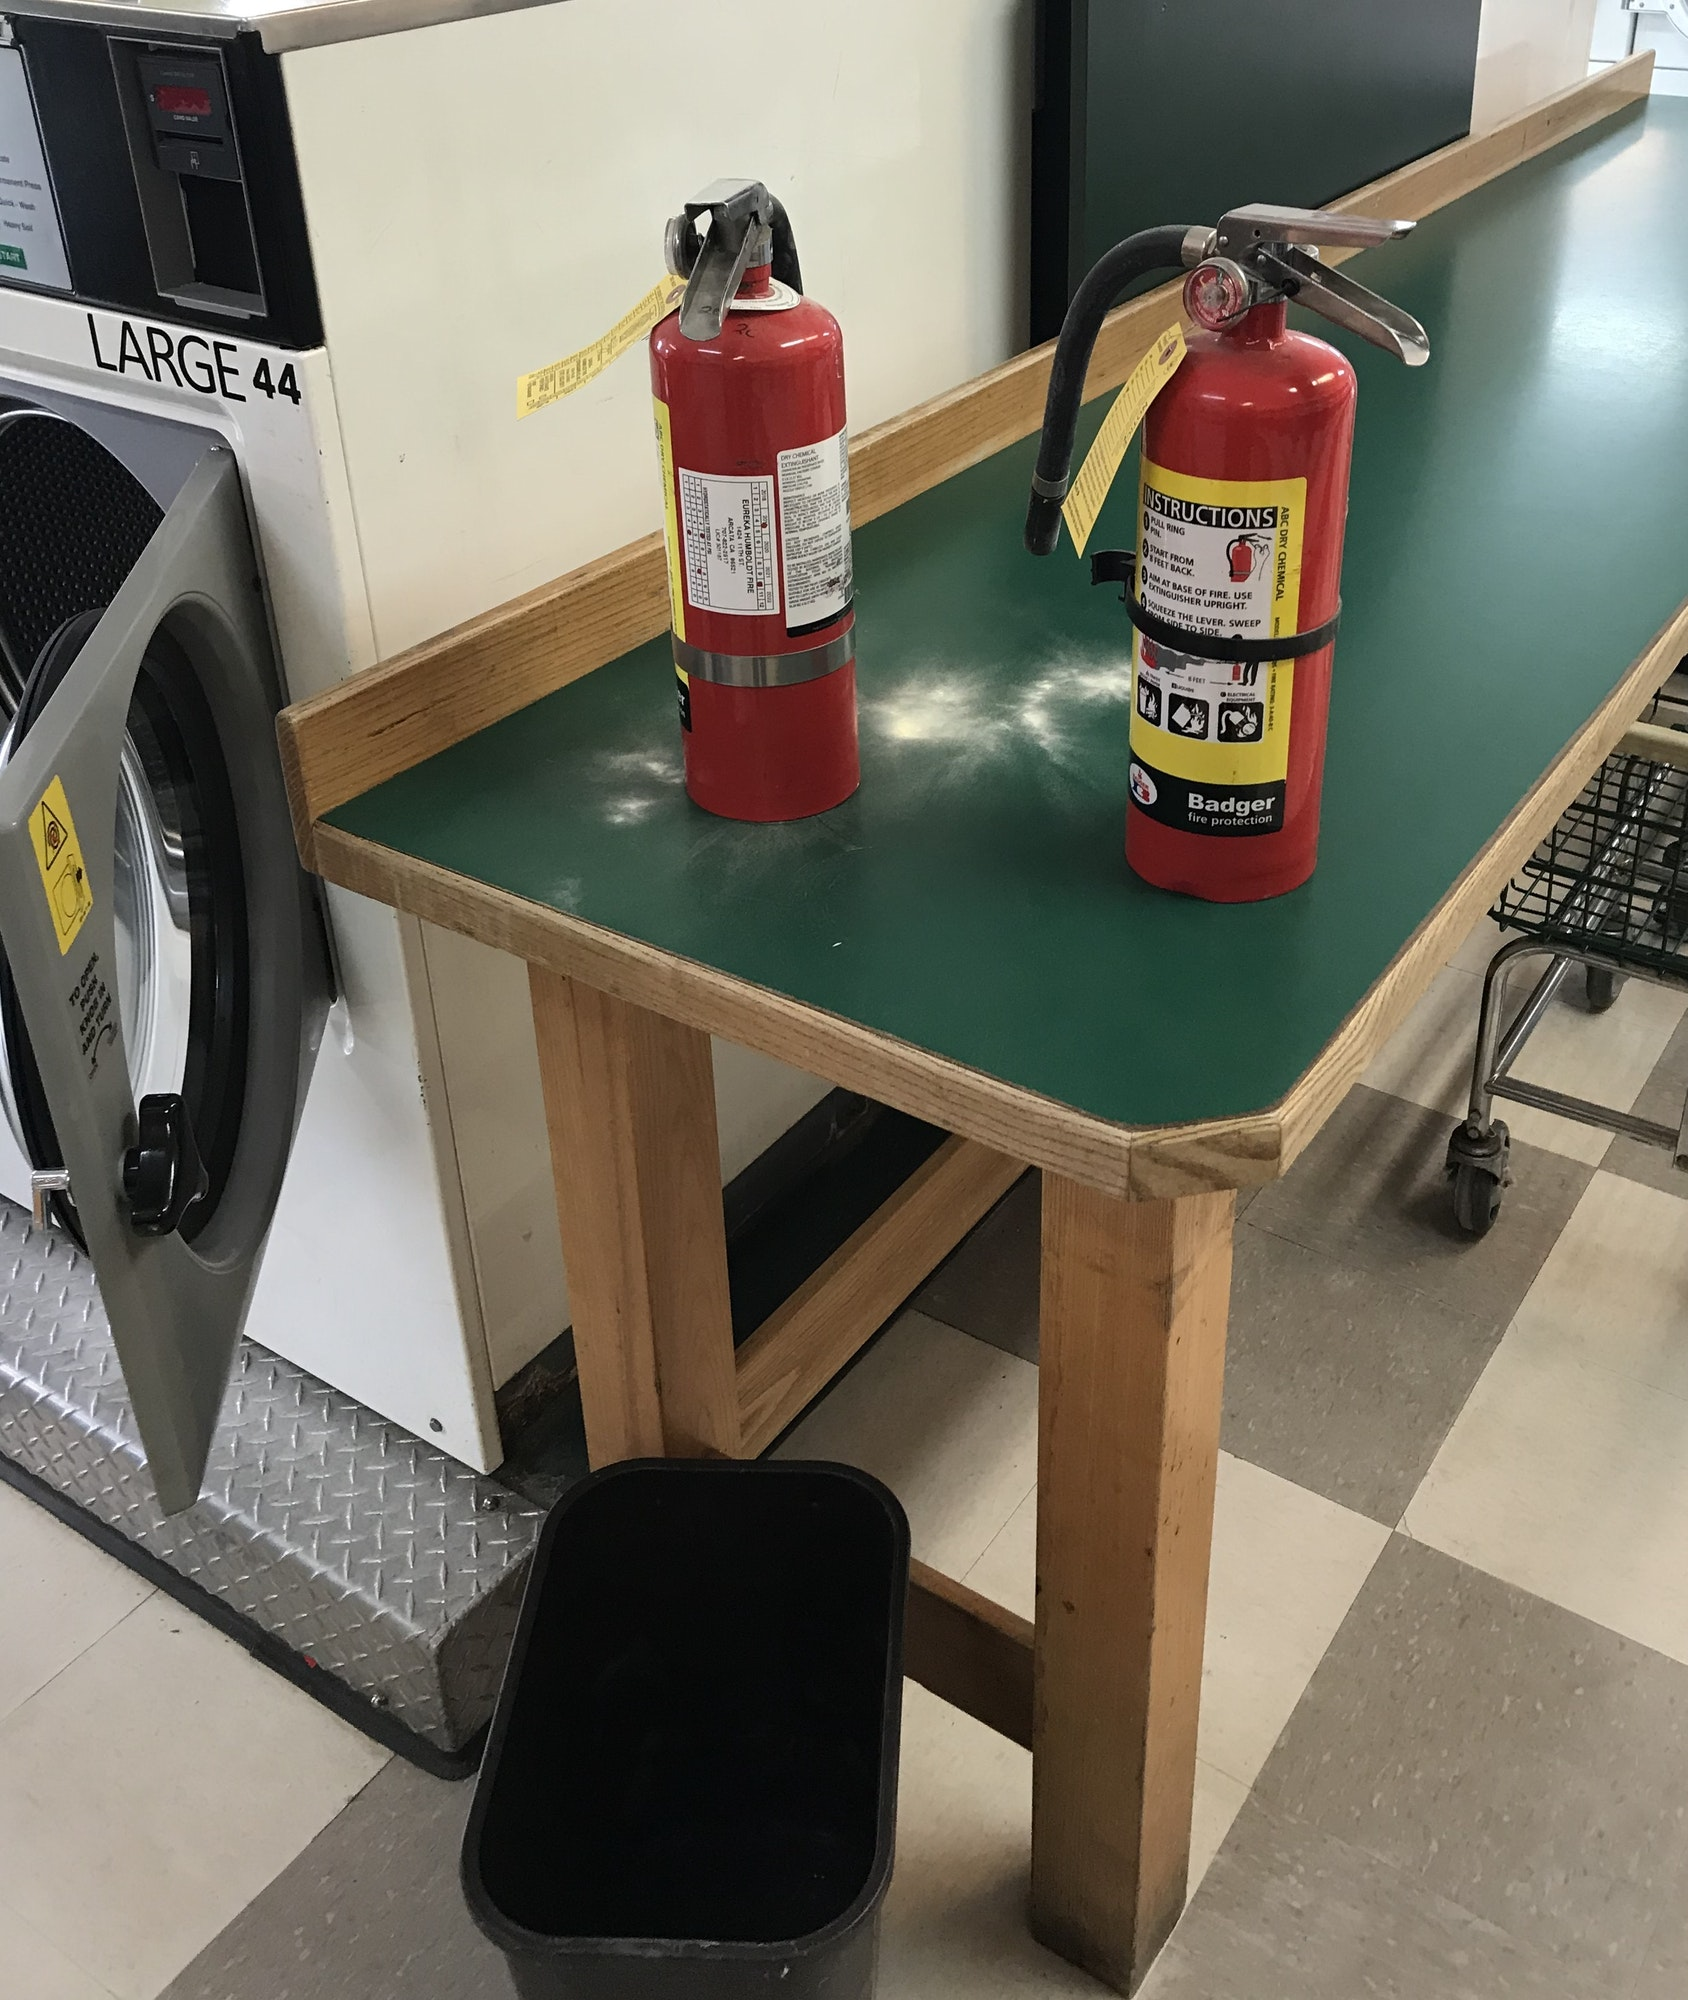 Two expelled fire extinguishers on a table